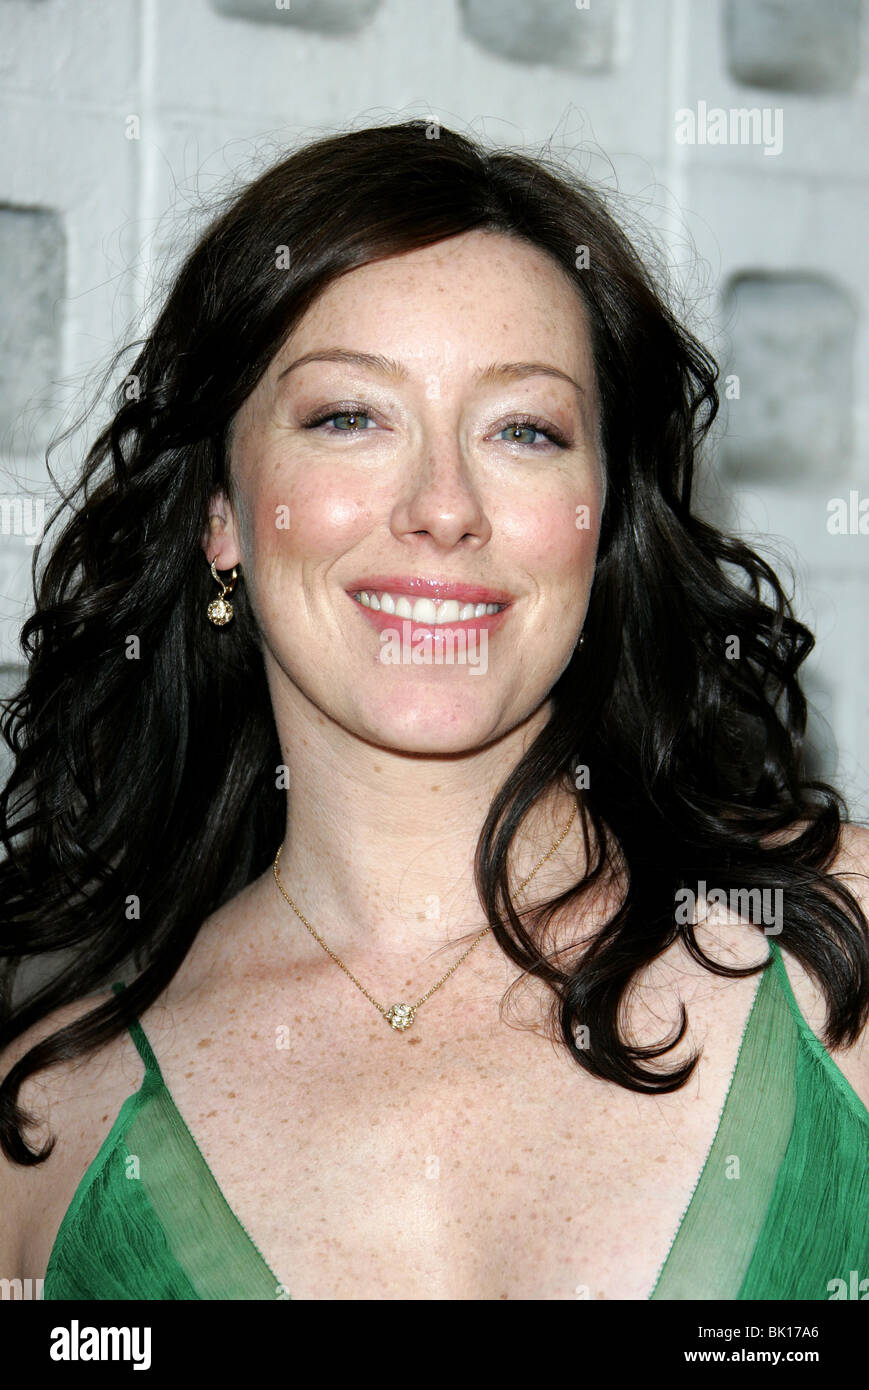 MOLLY PARKER DEADWOOD SEASON 2 PREMIERE CINERAMA DOME ...